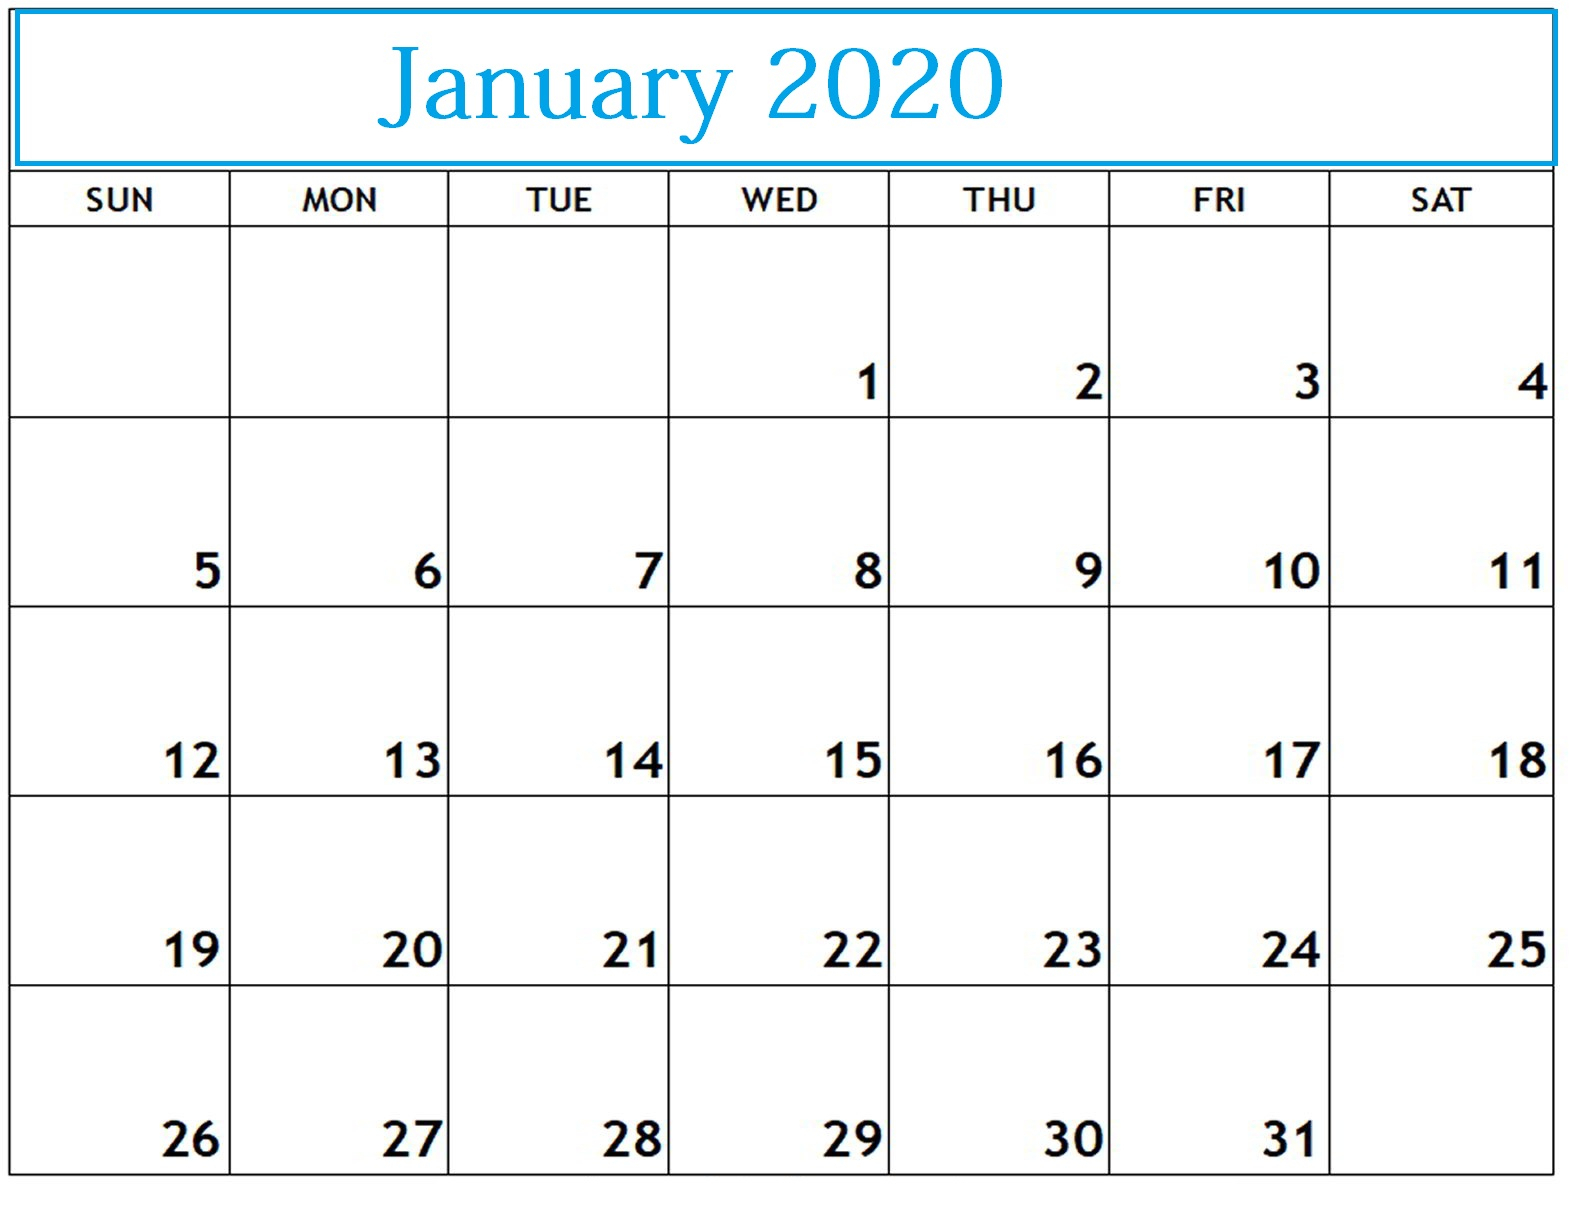 January Calendar 2020 Printable With Holidays | Printable